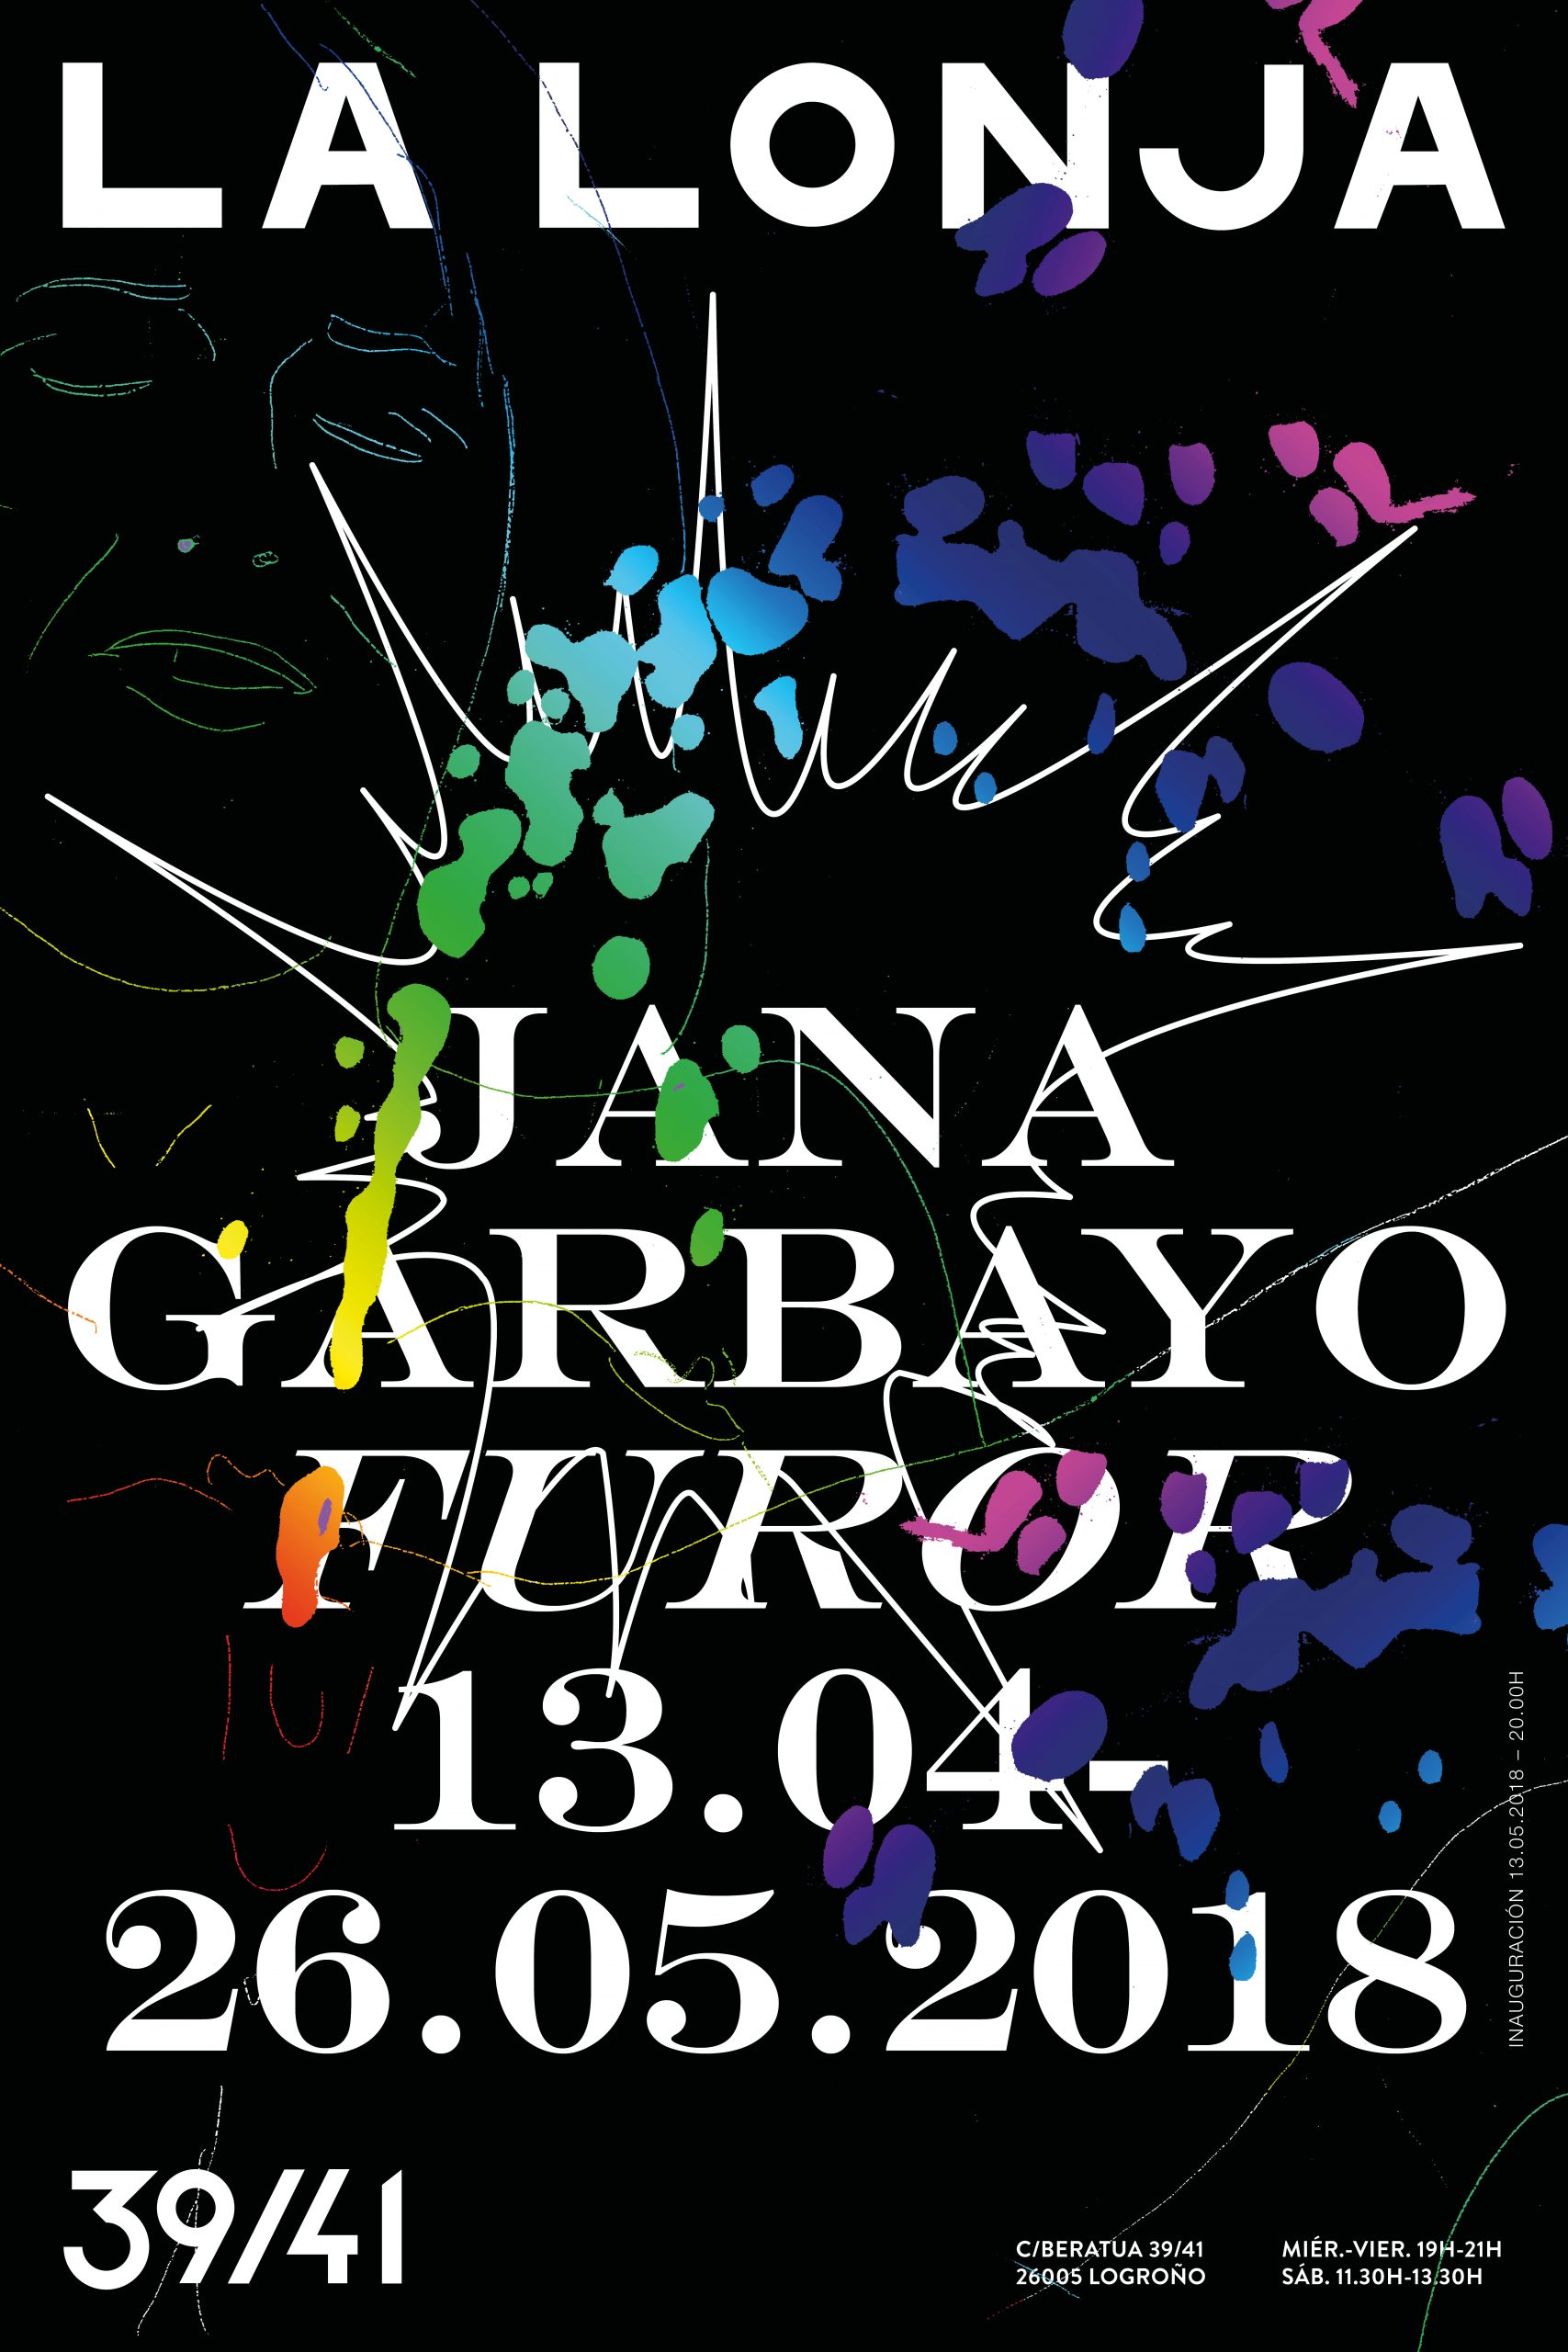 FUROR / JANA GARBAYO 13.ABR.- 26.MAY.2018